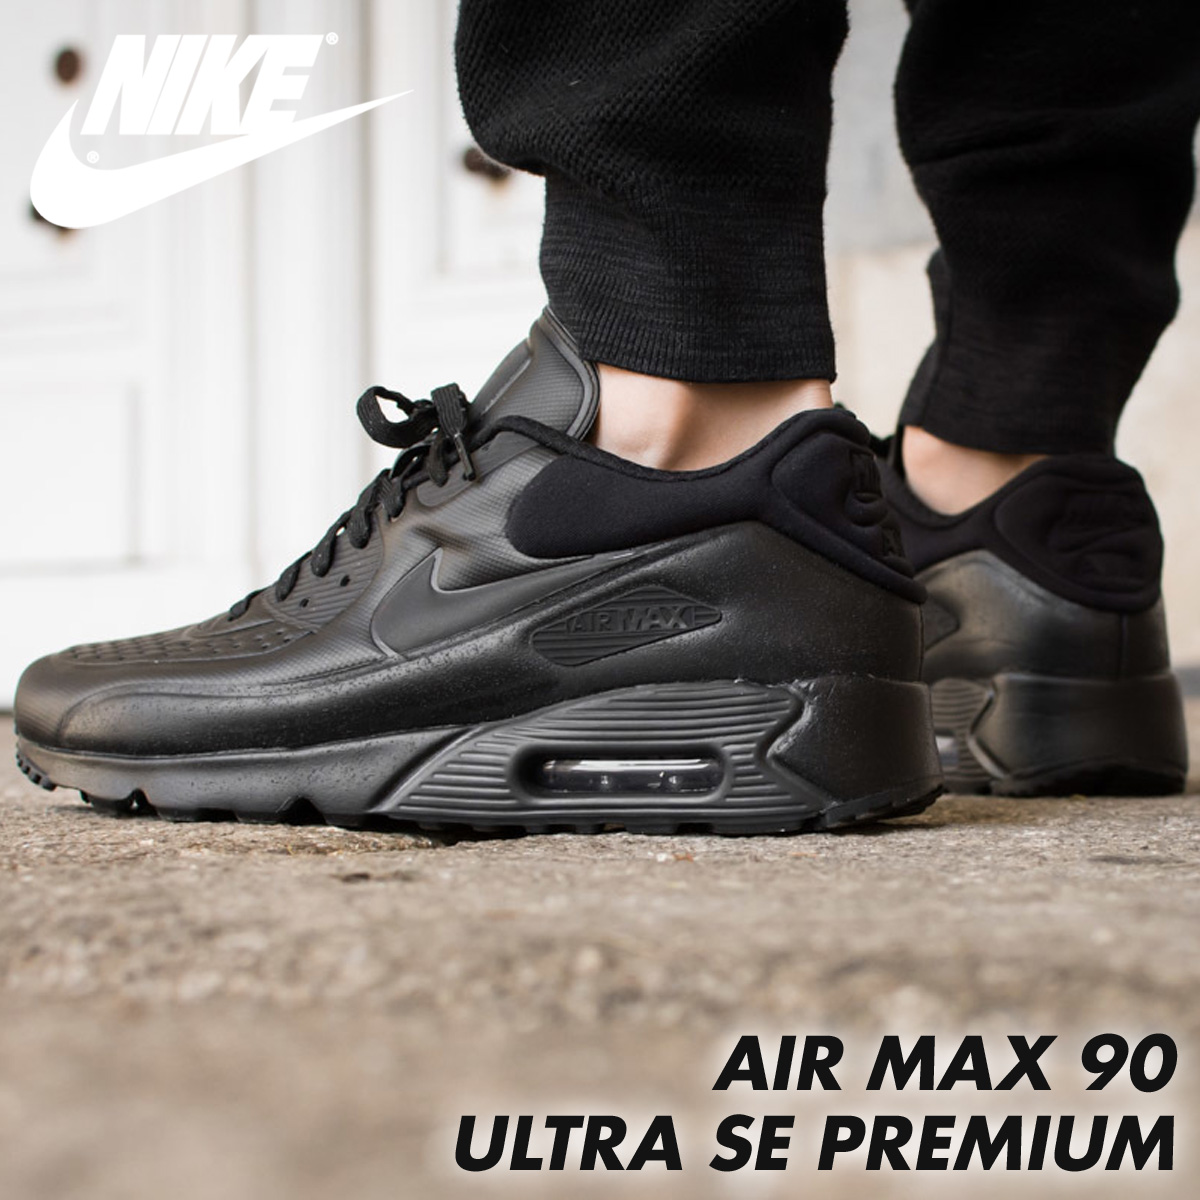 Men's Shoe Nike Air Max 90 Ultra SE Premium 858955 001